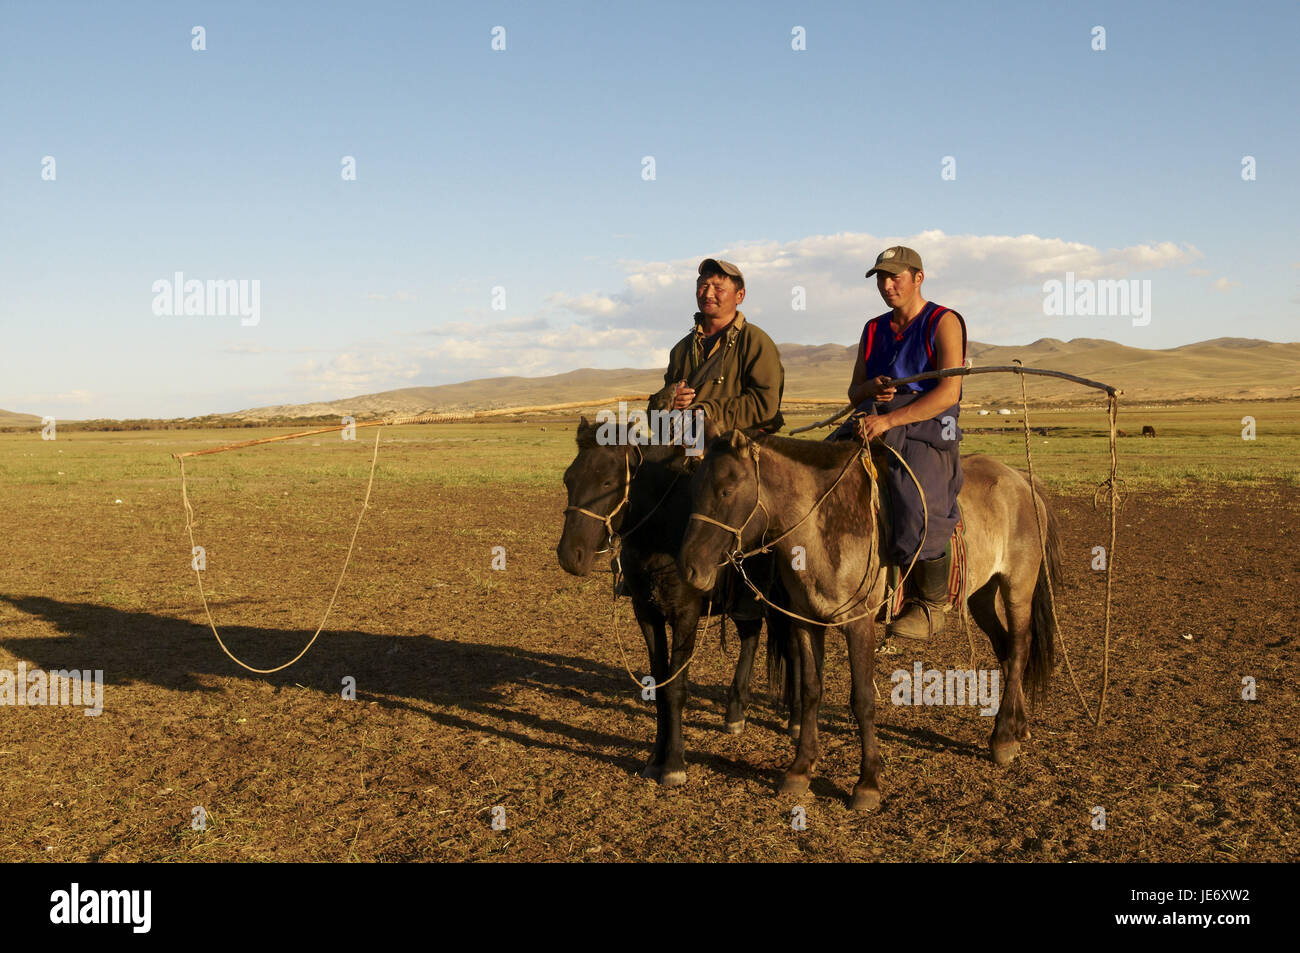 Mongolia, Central Asia, Arkhangai province, nomad, bleed, men with Urga, - Stock Image